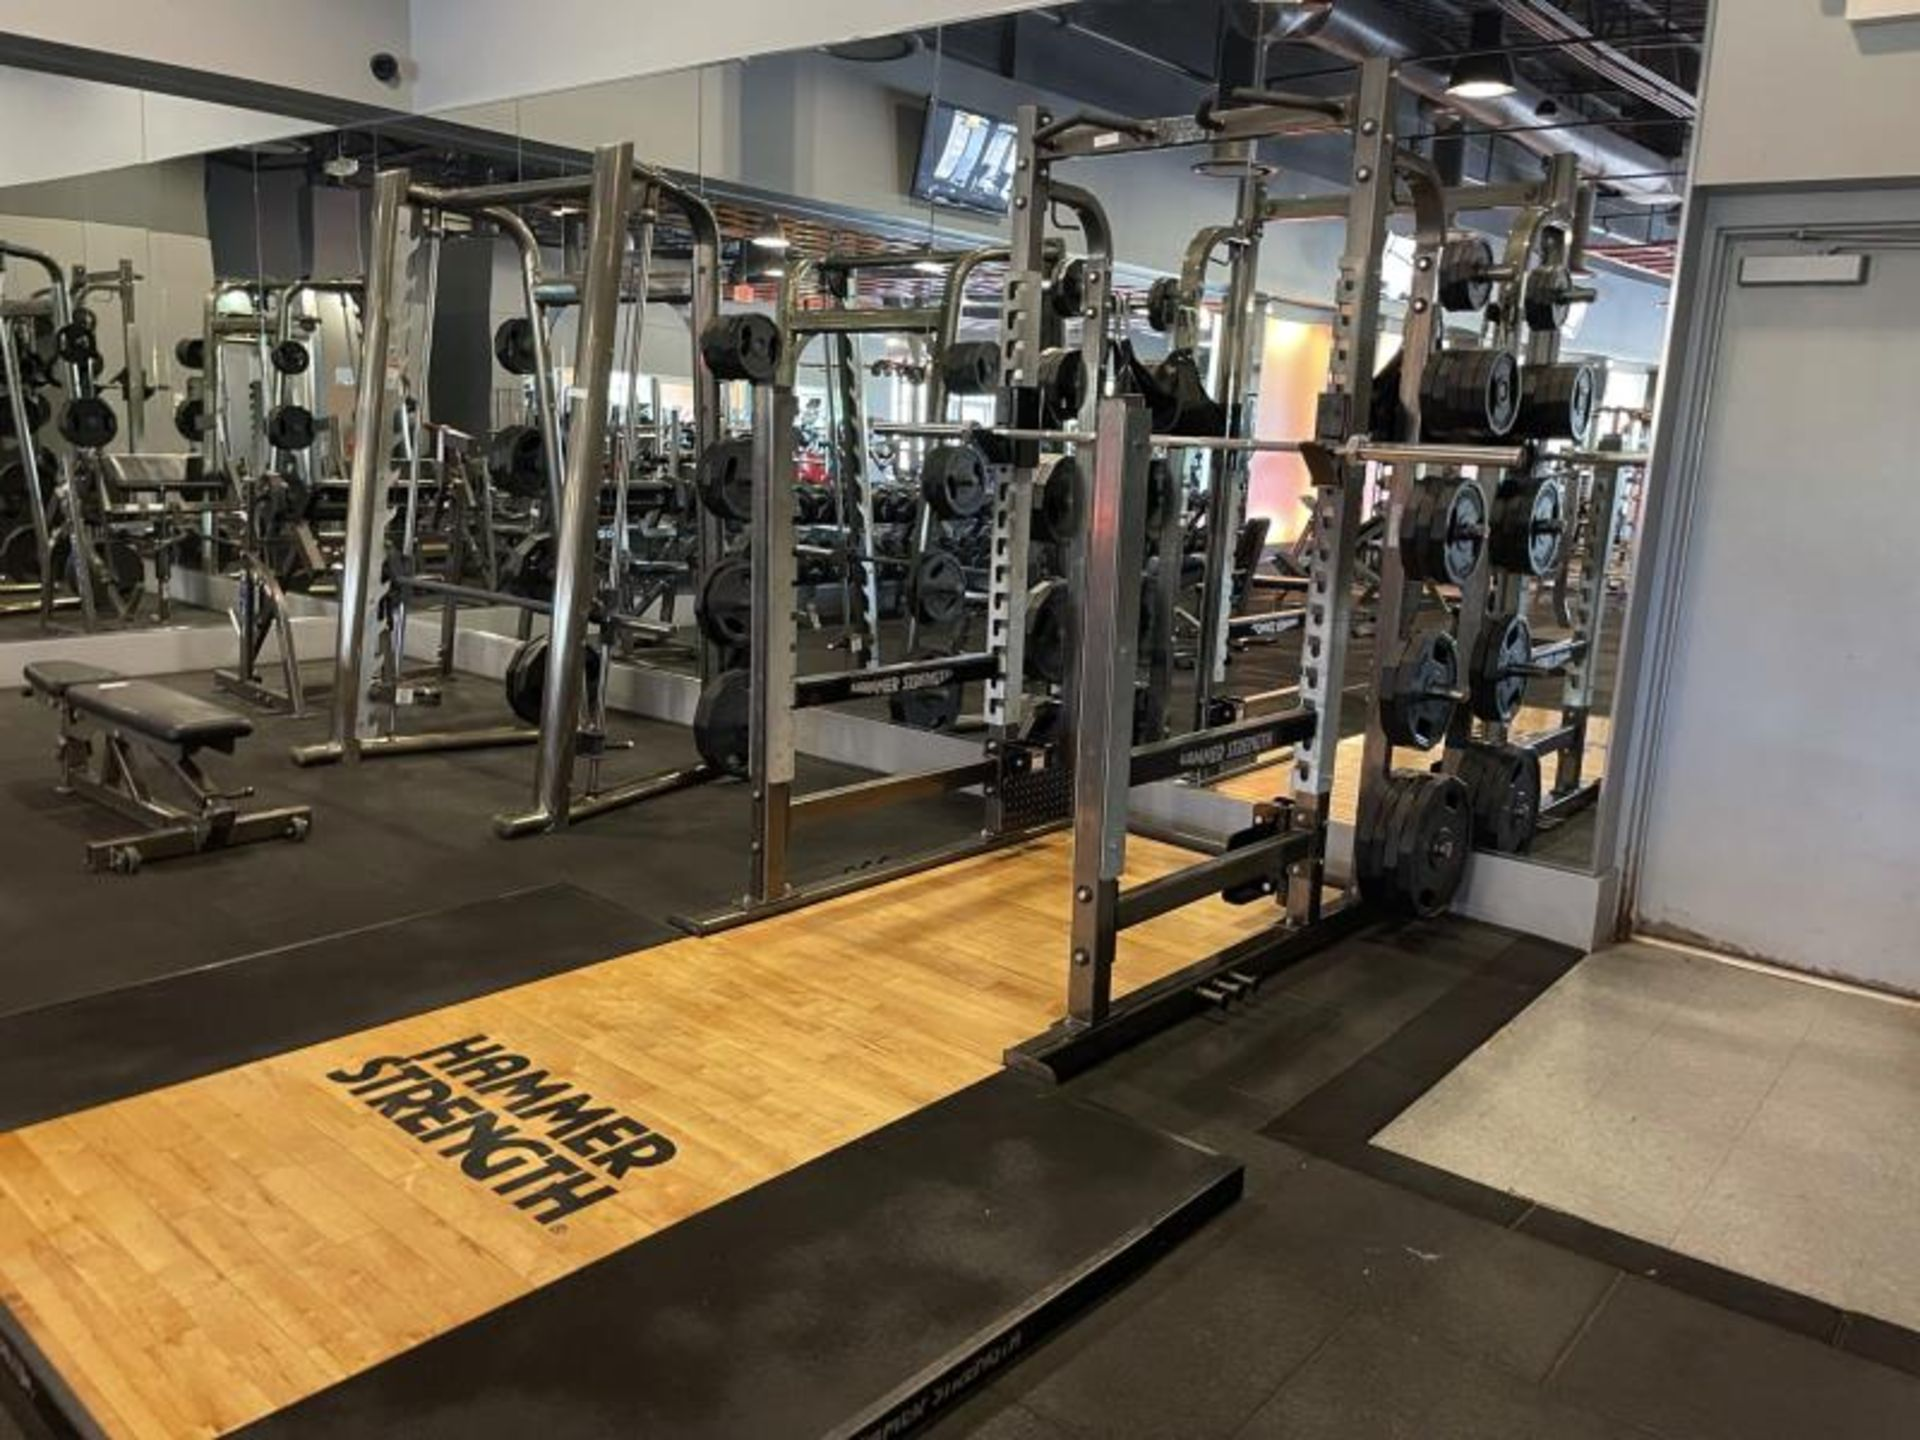 Hammer Strength with Wood Floor, Rack, Iron Grip Weight Plates M: HDMR8/B01 - Image 2 of 7